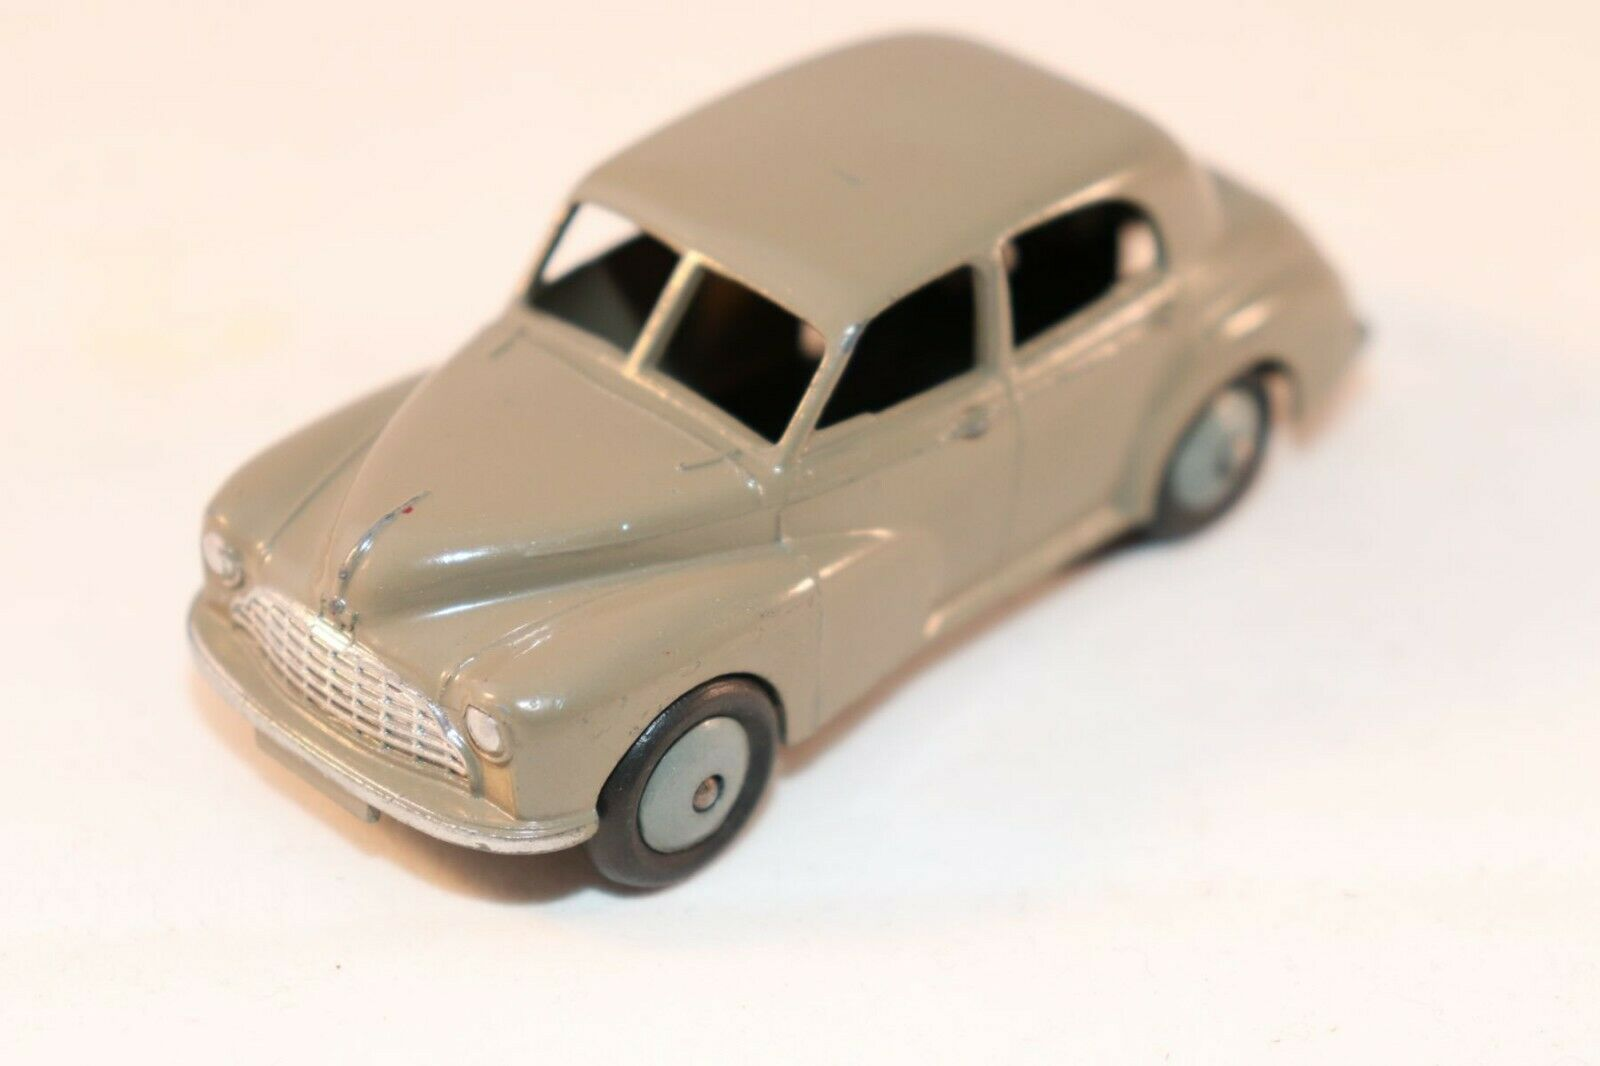 Dinky Toys 159 Morris Oxford stone grey in near mint all original condition